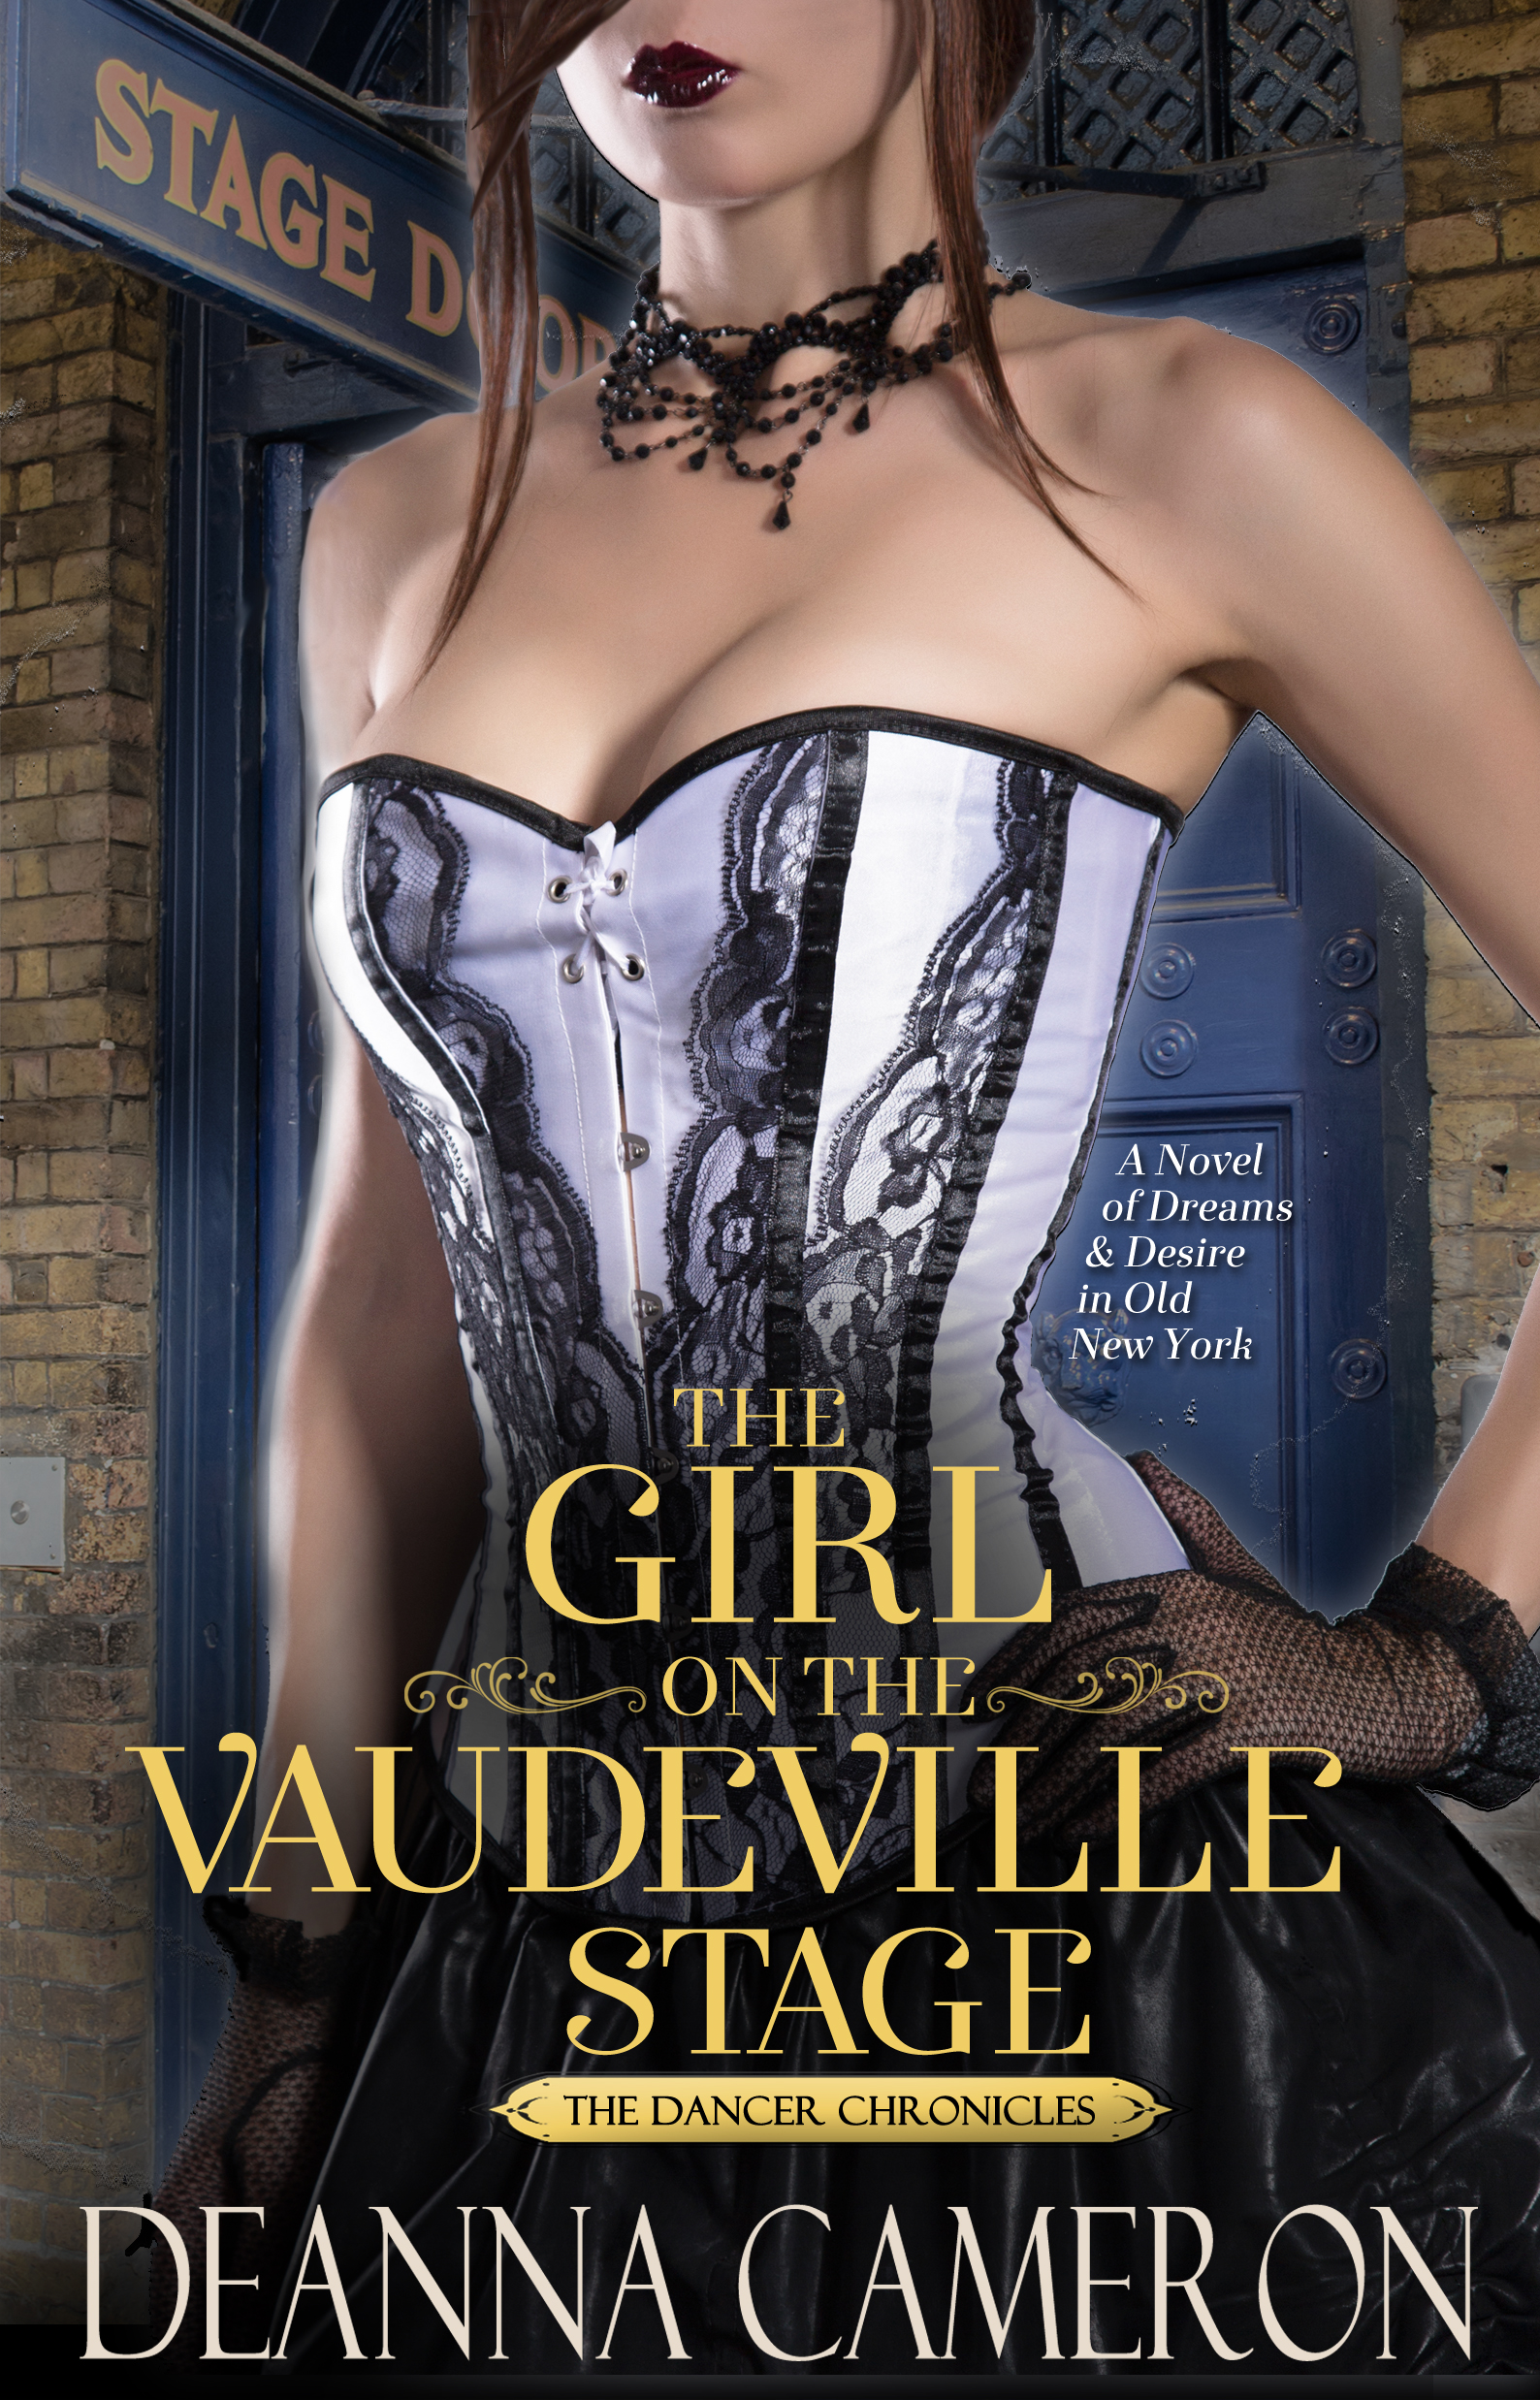 The Girl on the Vaudeville Stage book cover